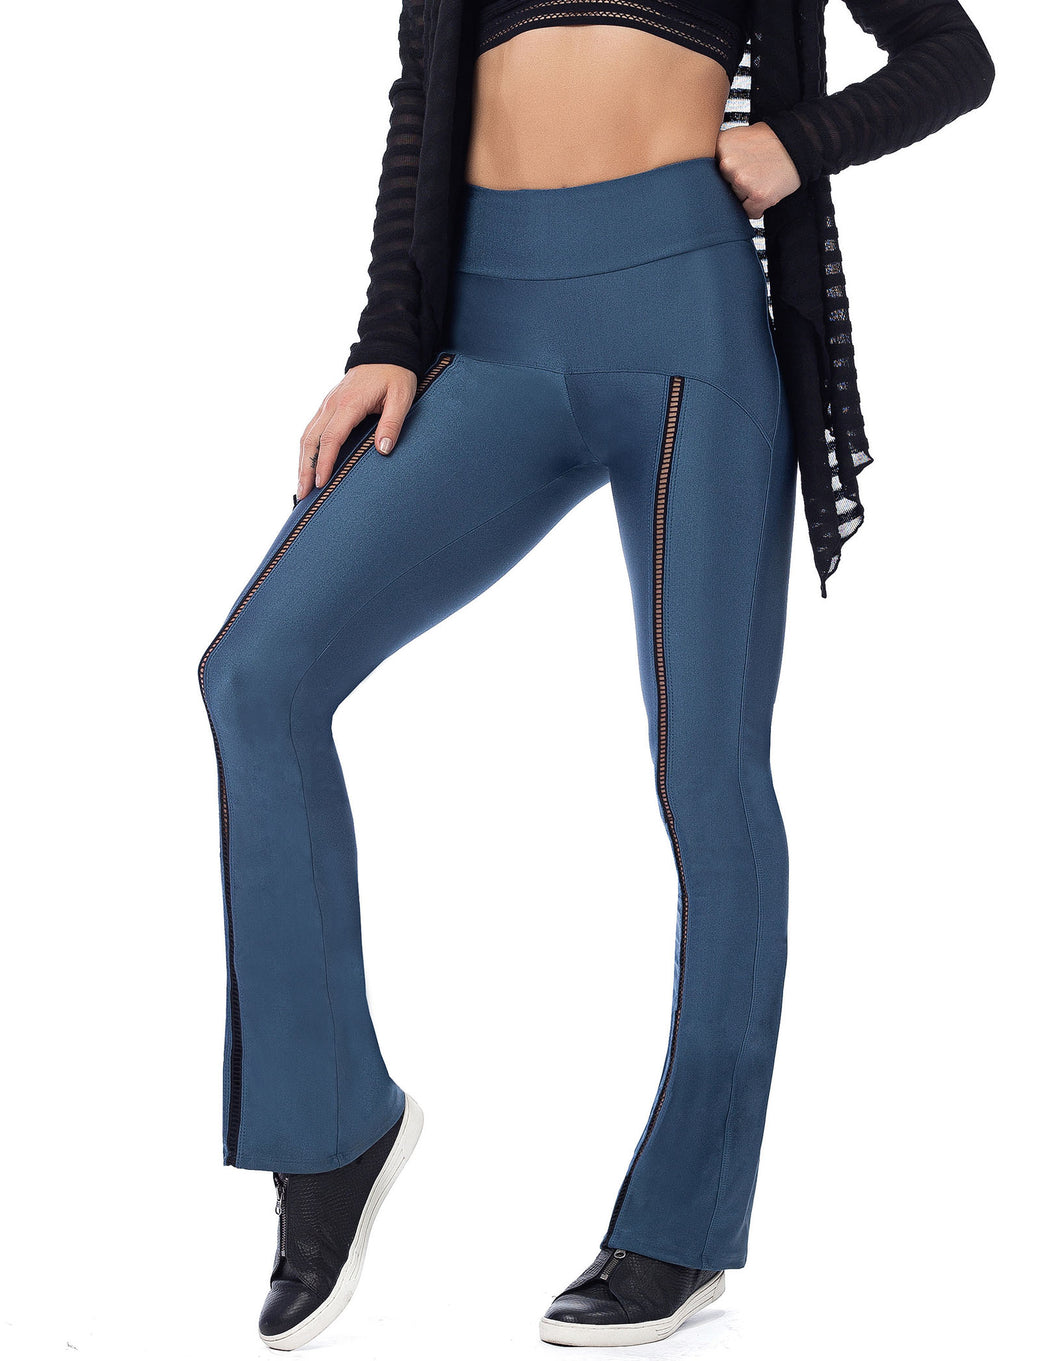 Legging Ballerina Galaxy Wonder Blue